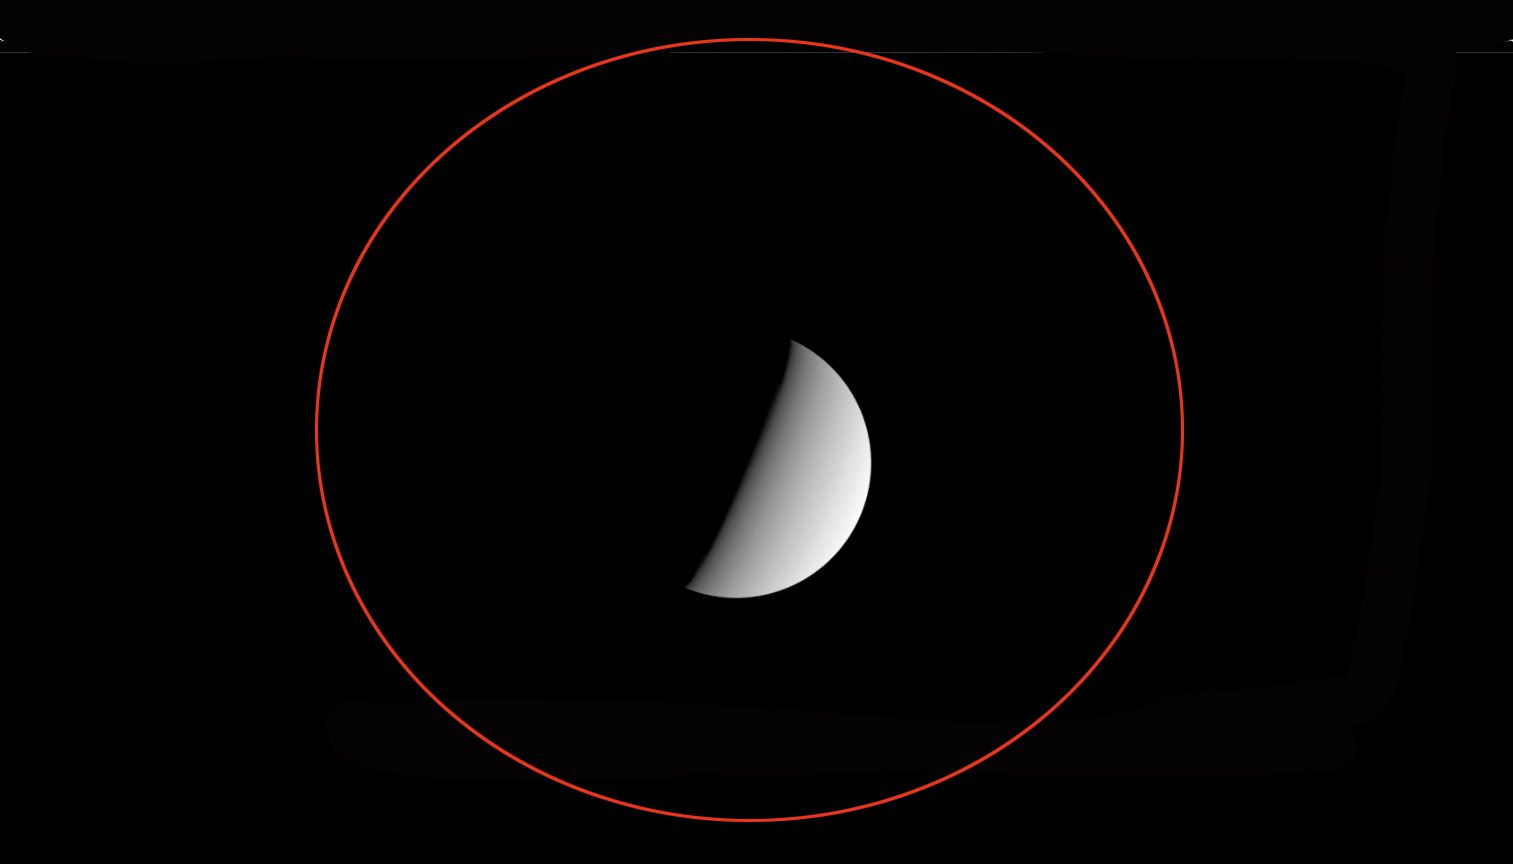 Venus in one of its phases.